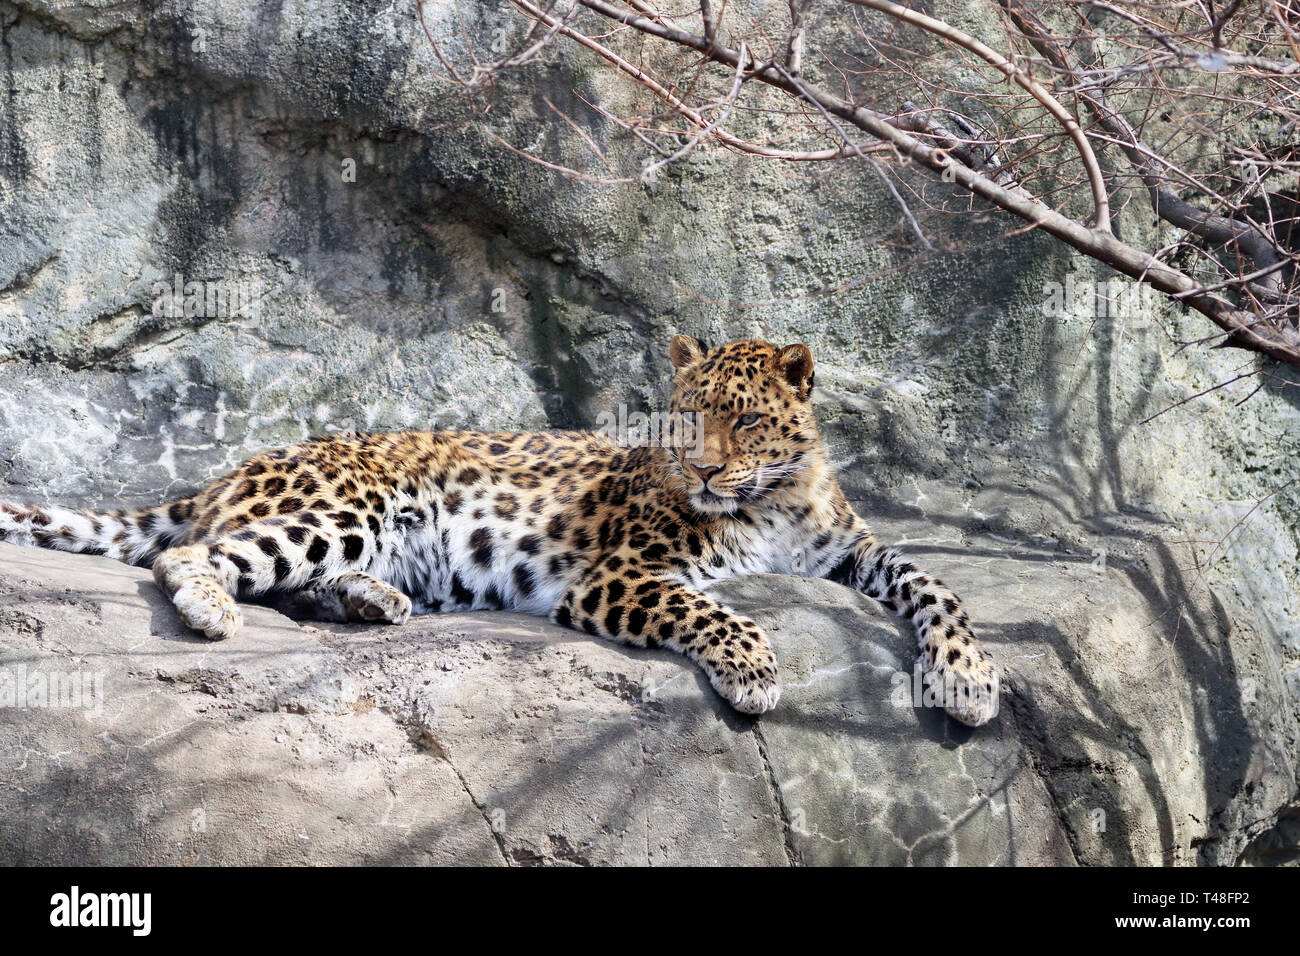 Amur Leopard, Panthera pardus orientalis, Turtle Back Zoo, West Orange, New Jersey, USA - Stock Image